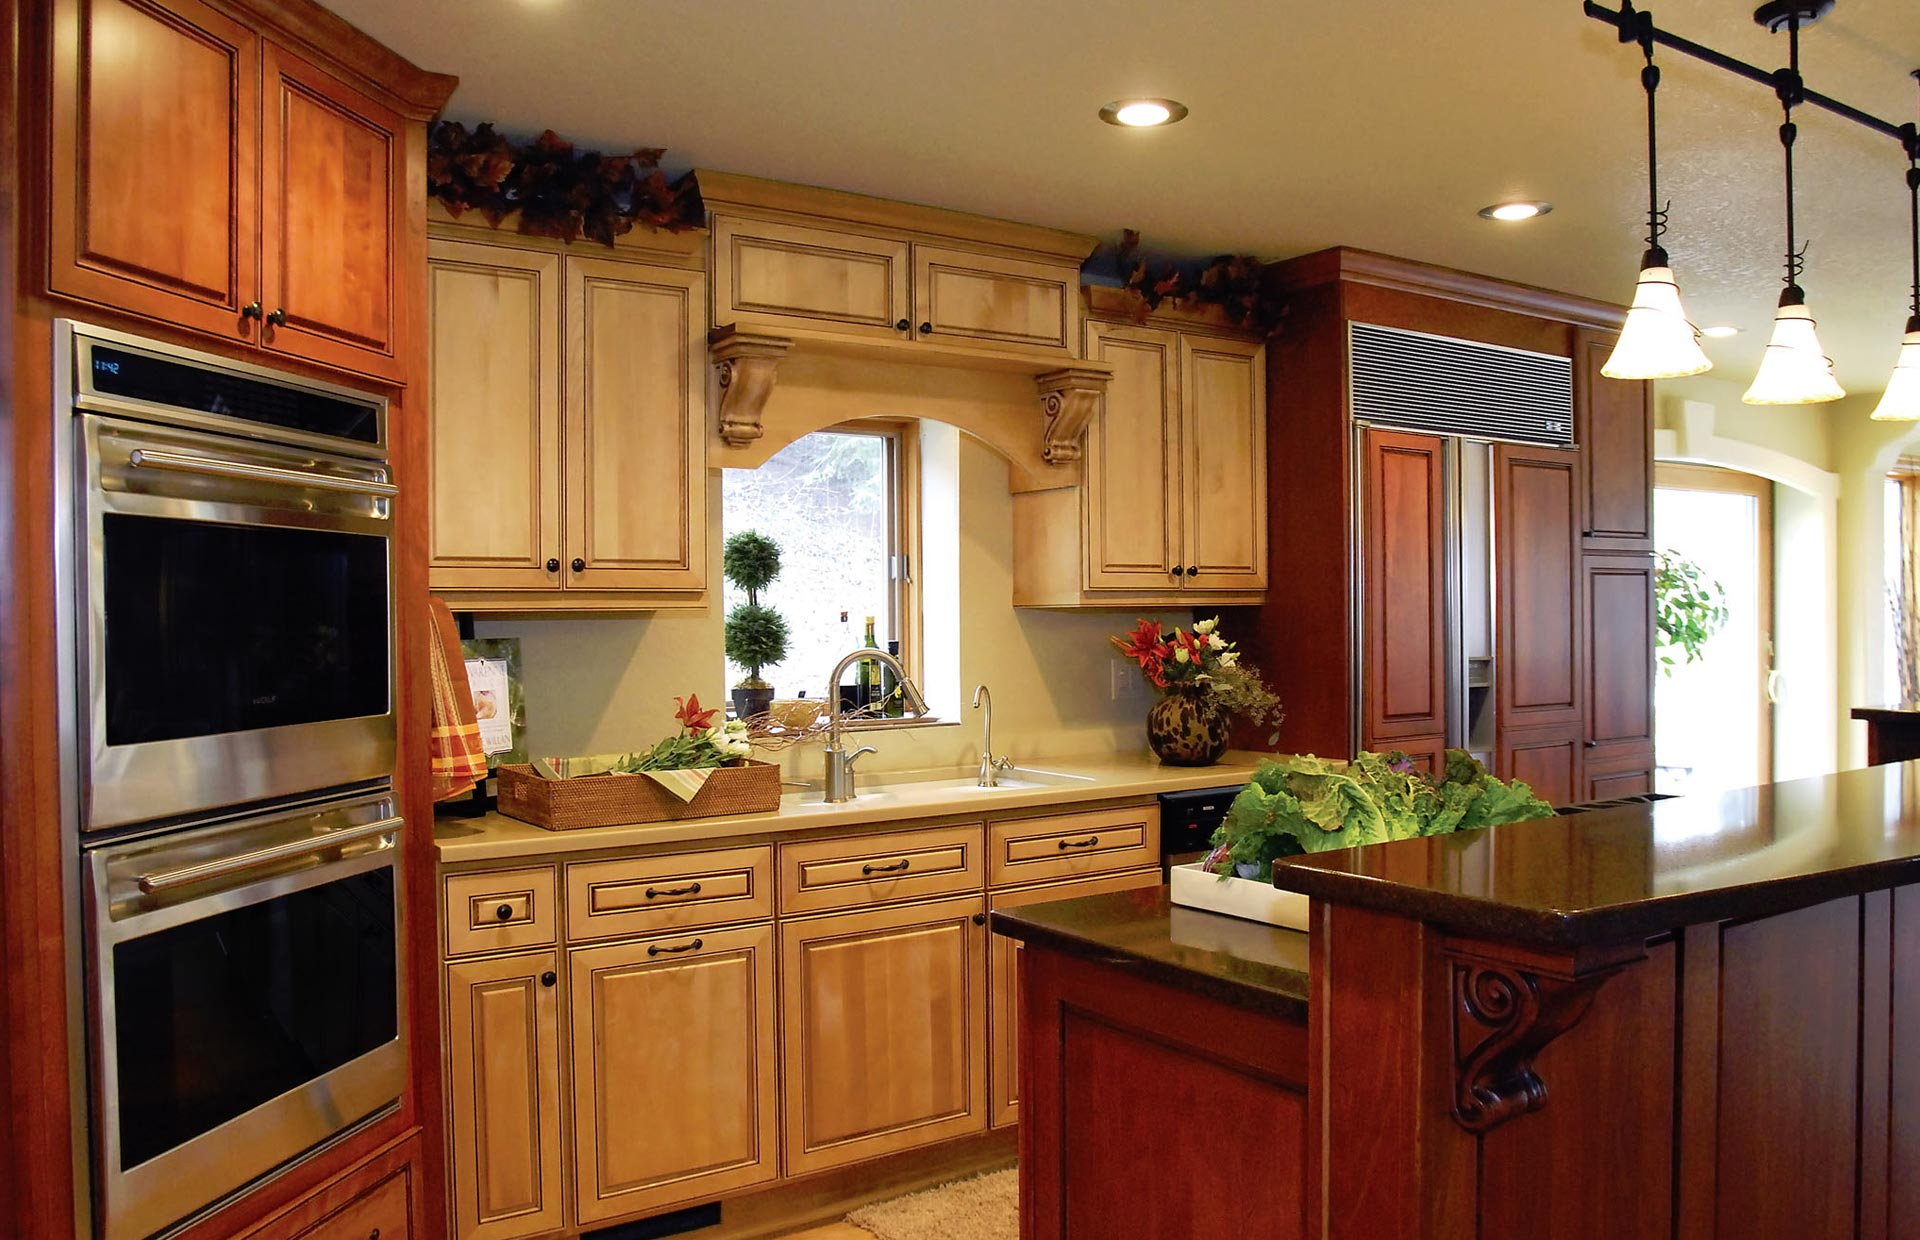 kitchen remodeling tampa pop up electrical outlet counter 6 must have tips for selecting the right floor tile